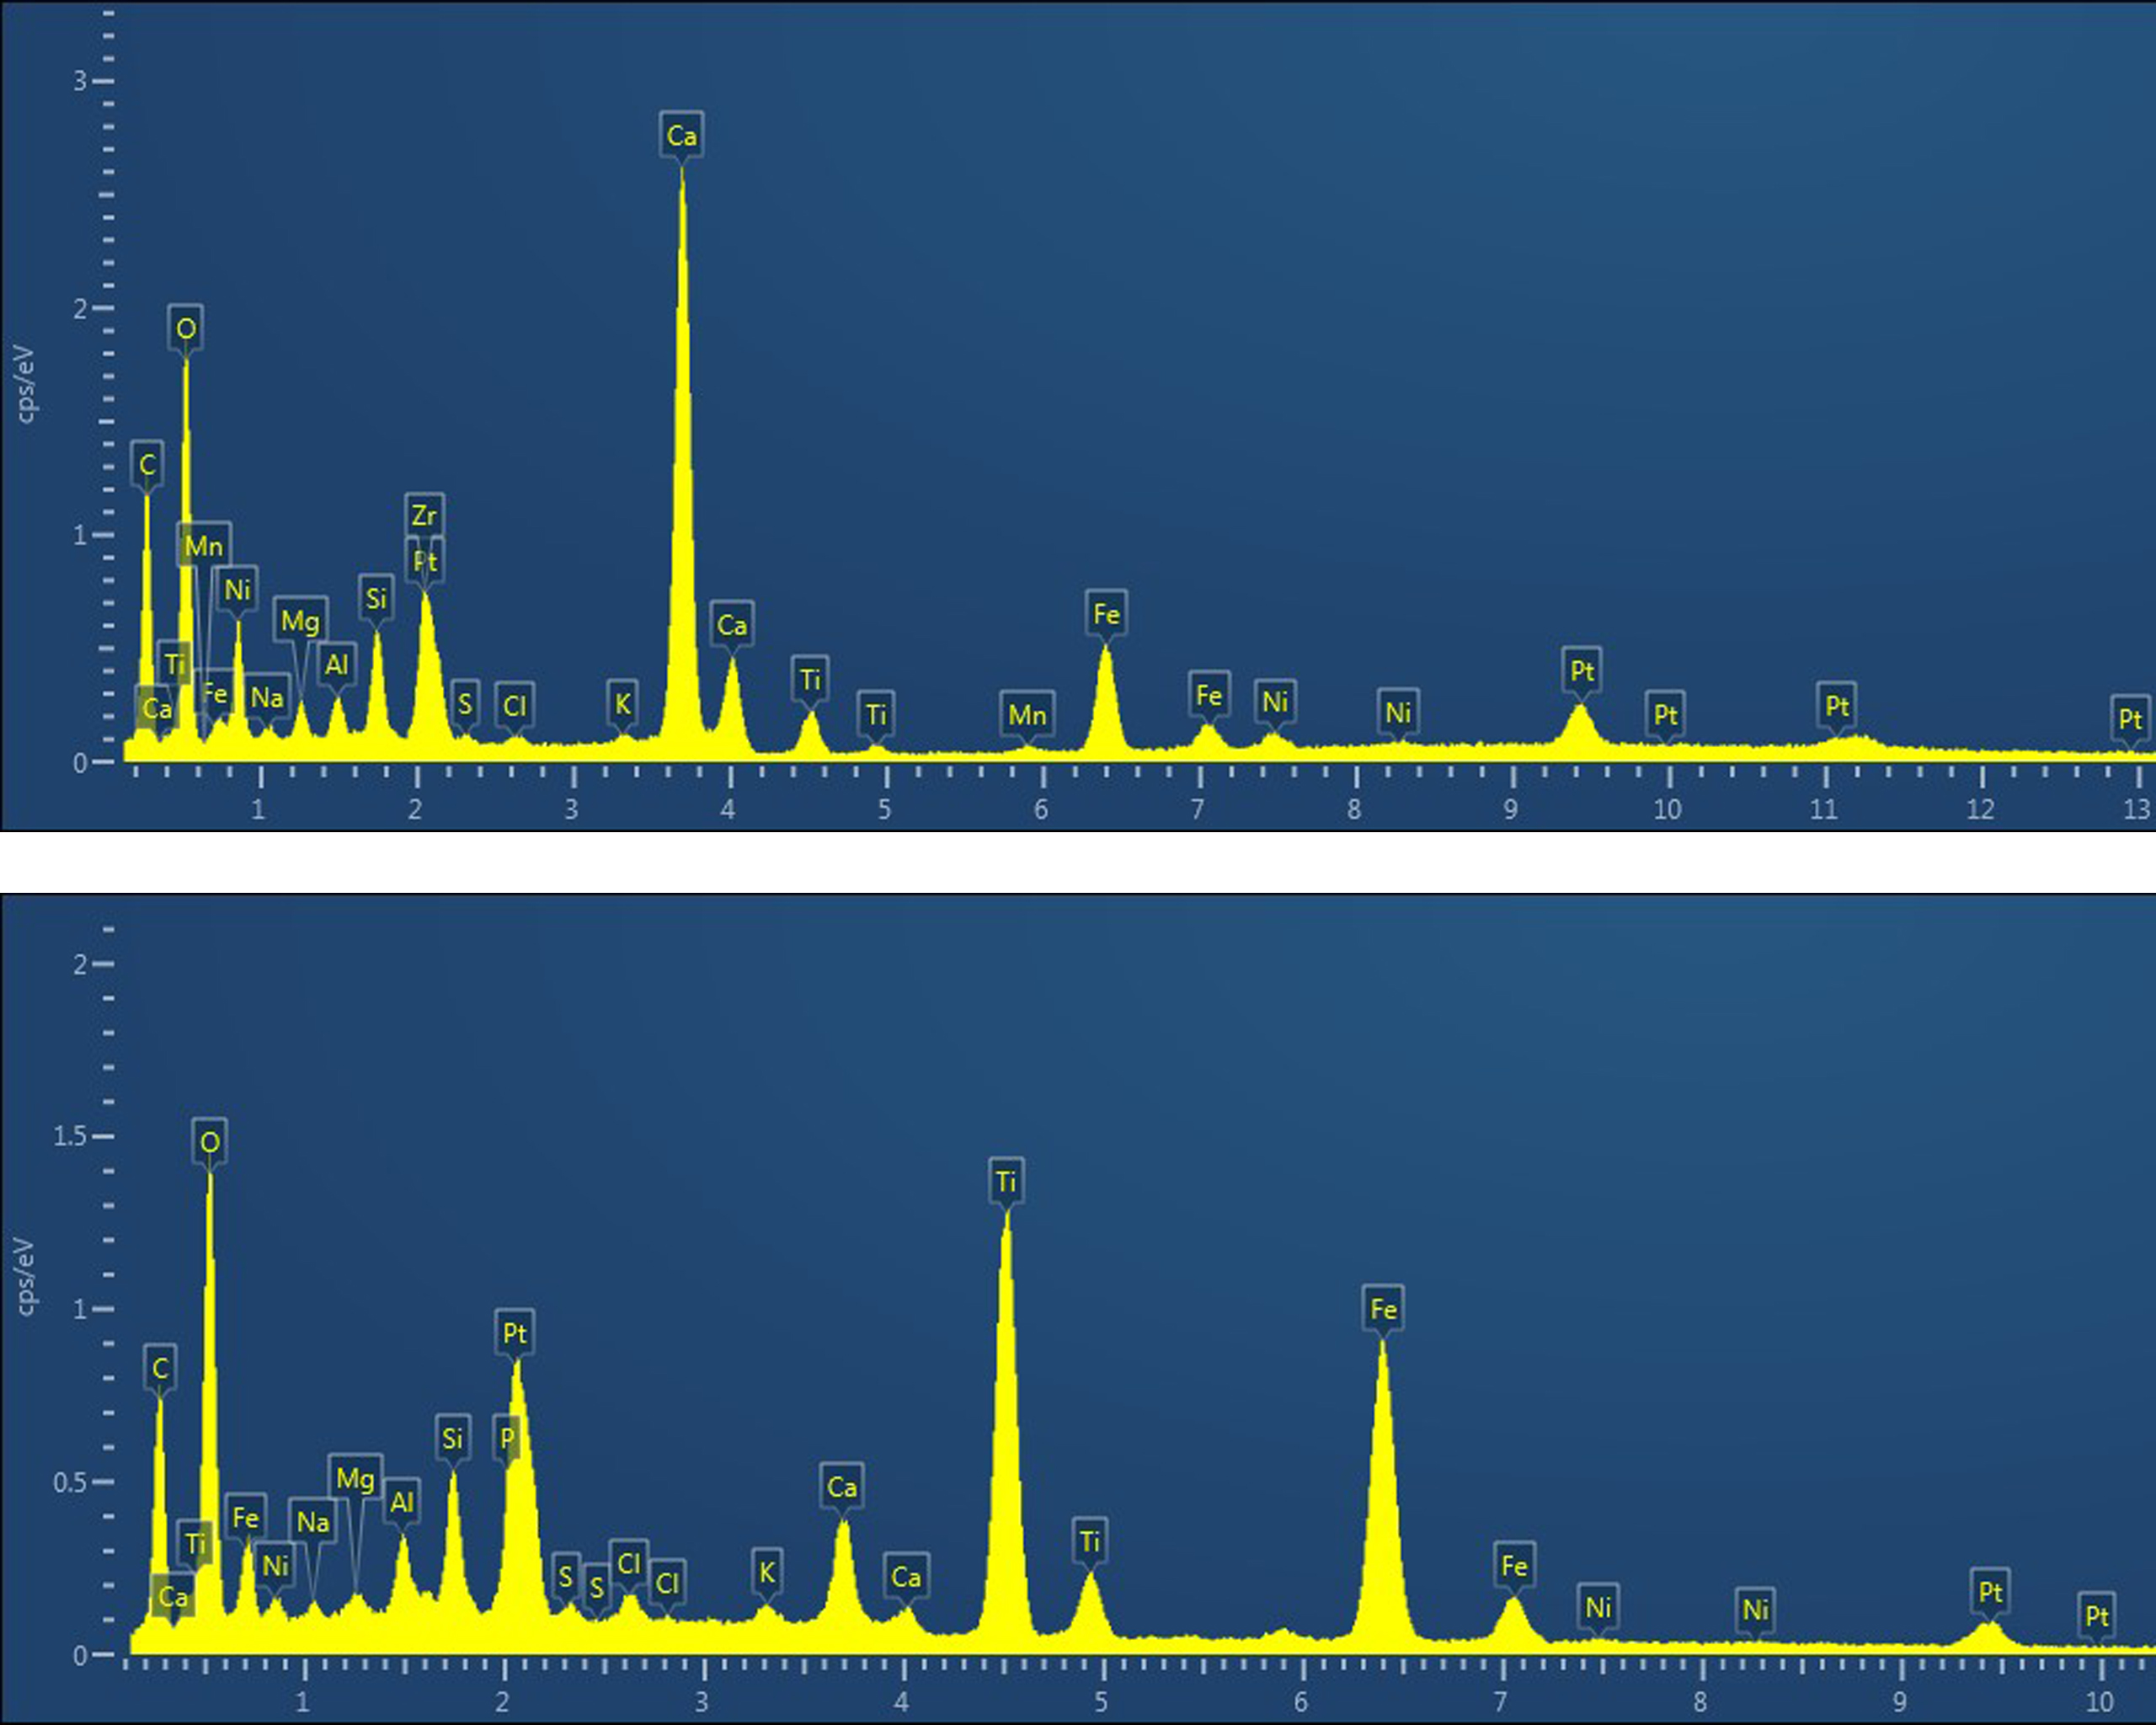 EDS spectra of the minerals found in the echinoid fossil Periarchus lyelli